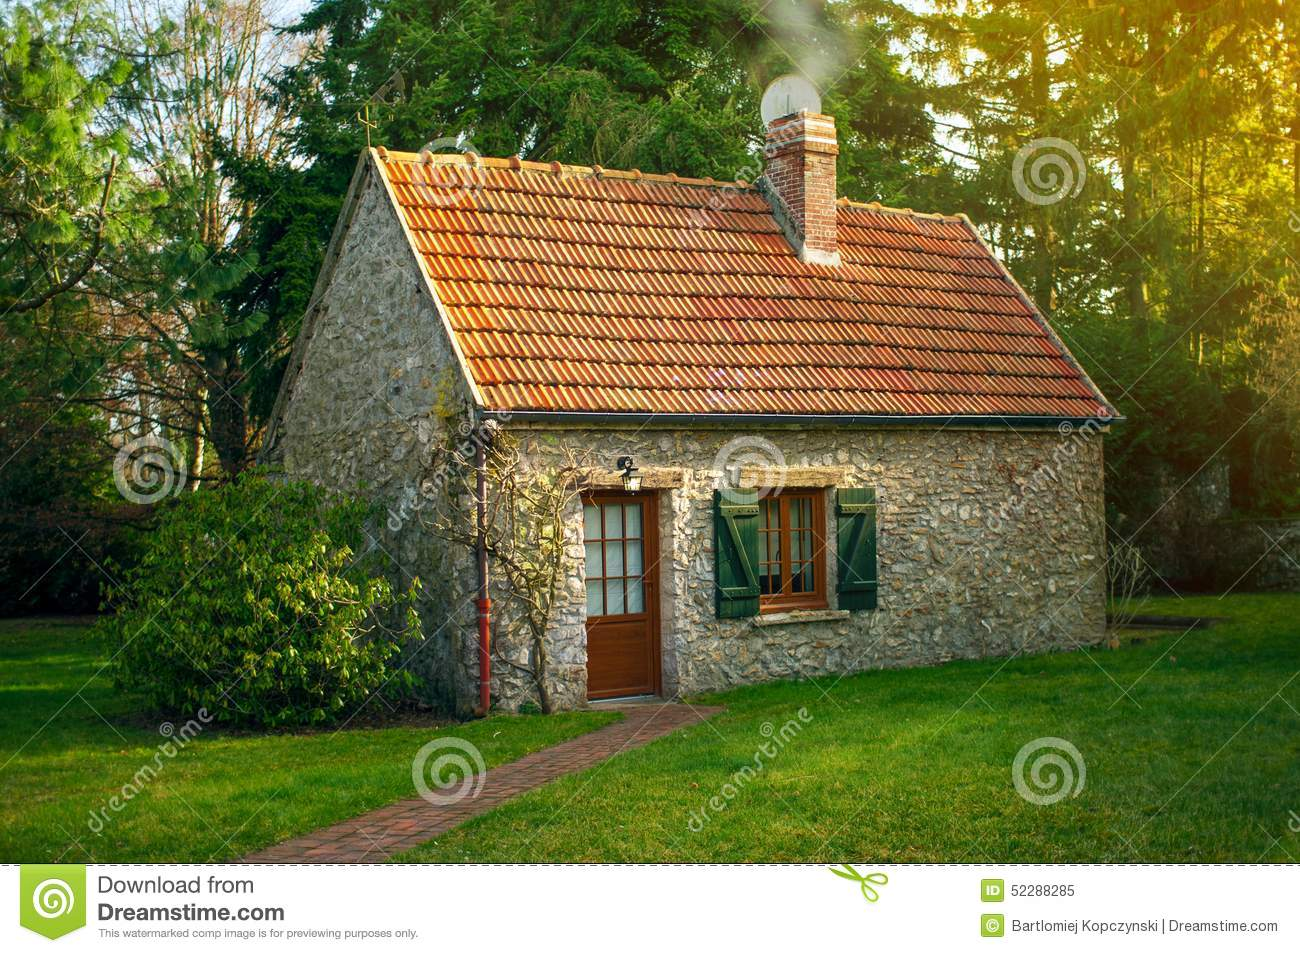 Shed Style Homes Beautiful Small House Stock Image Image Of Farm Brick